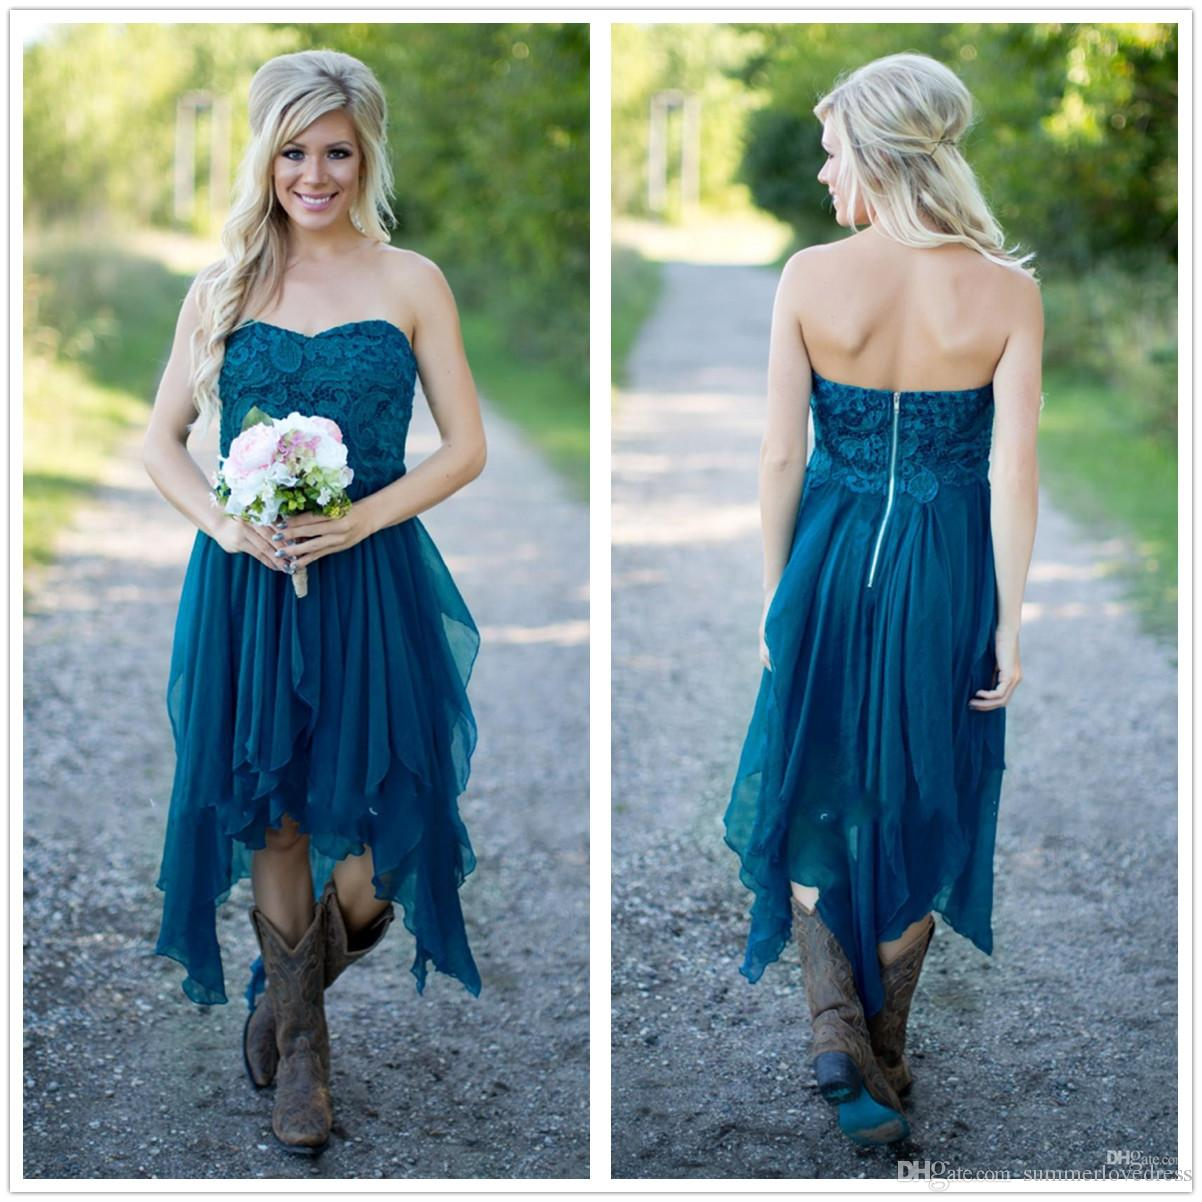 2017 New Sweetheart Lace Top Chiffon Country Bridesmaid Dresses Ruffle Knee Length Wedding Party Prom Dresses